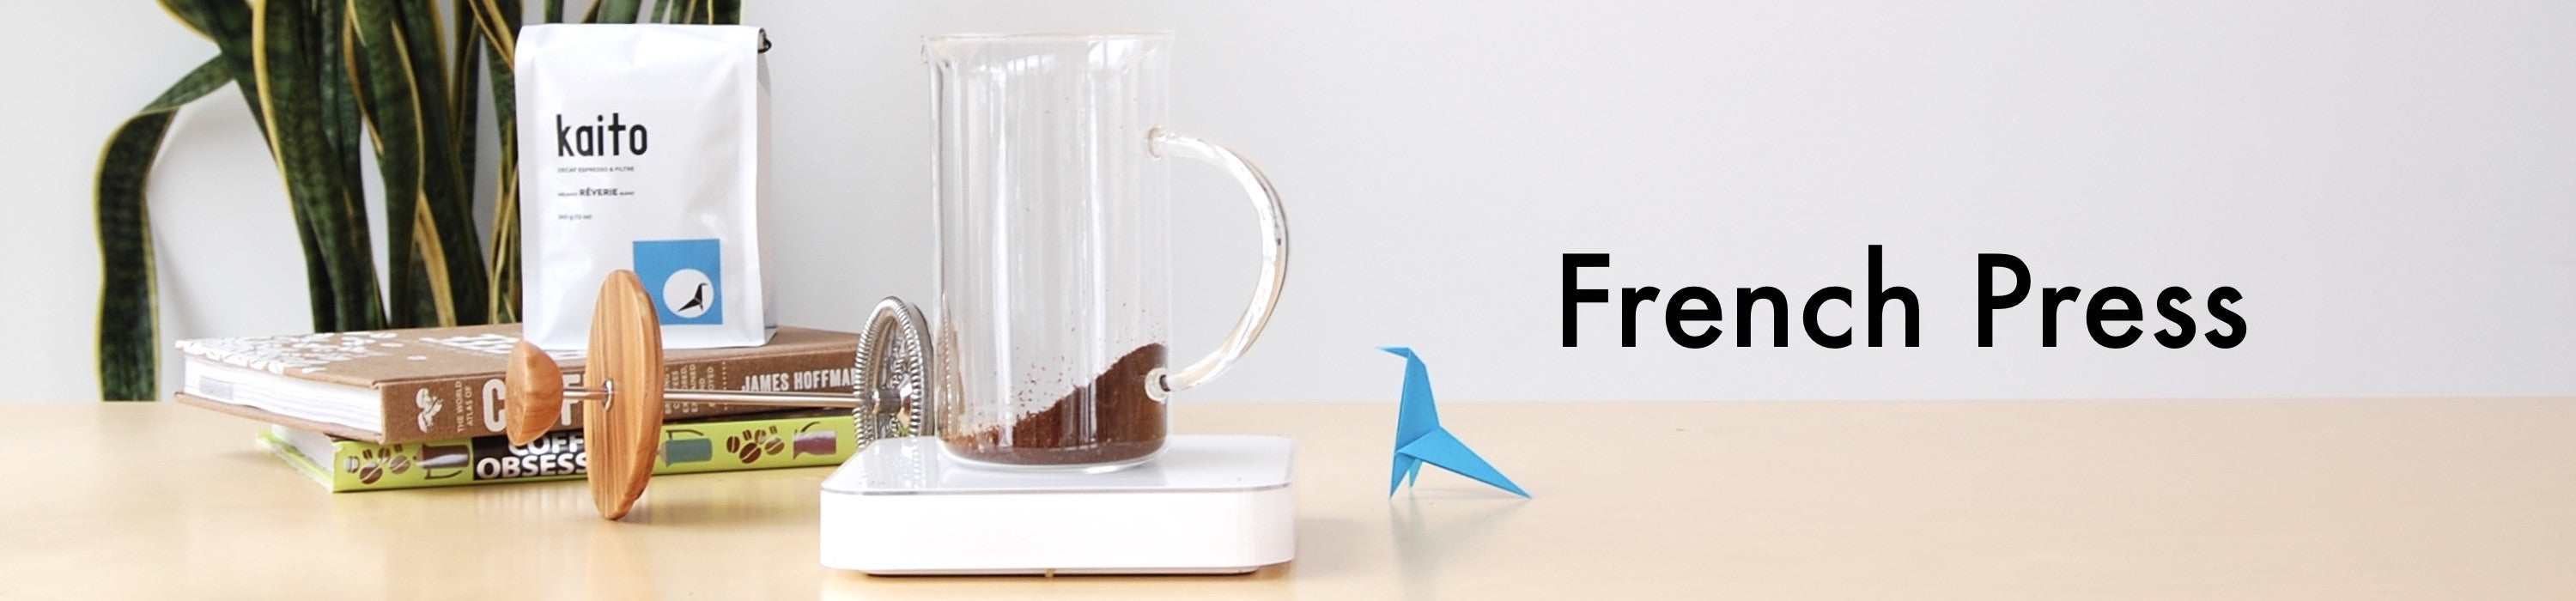 french press cafetière à piston origami